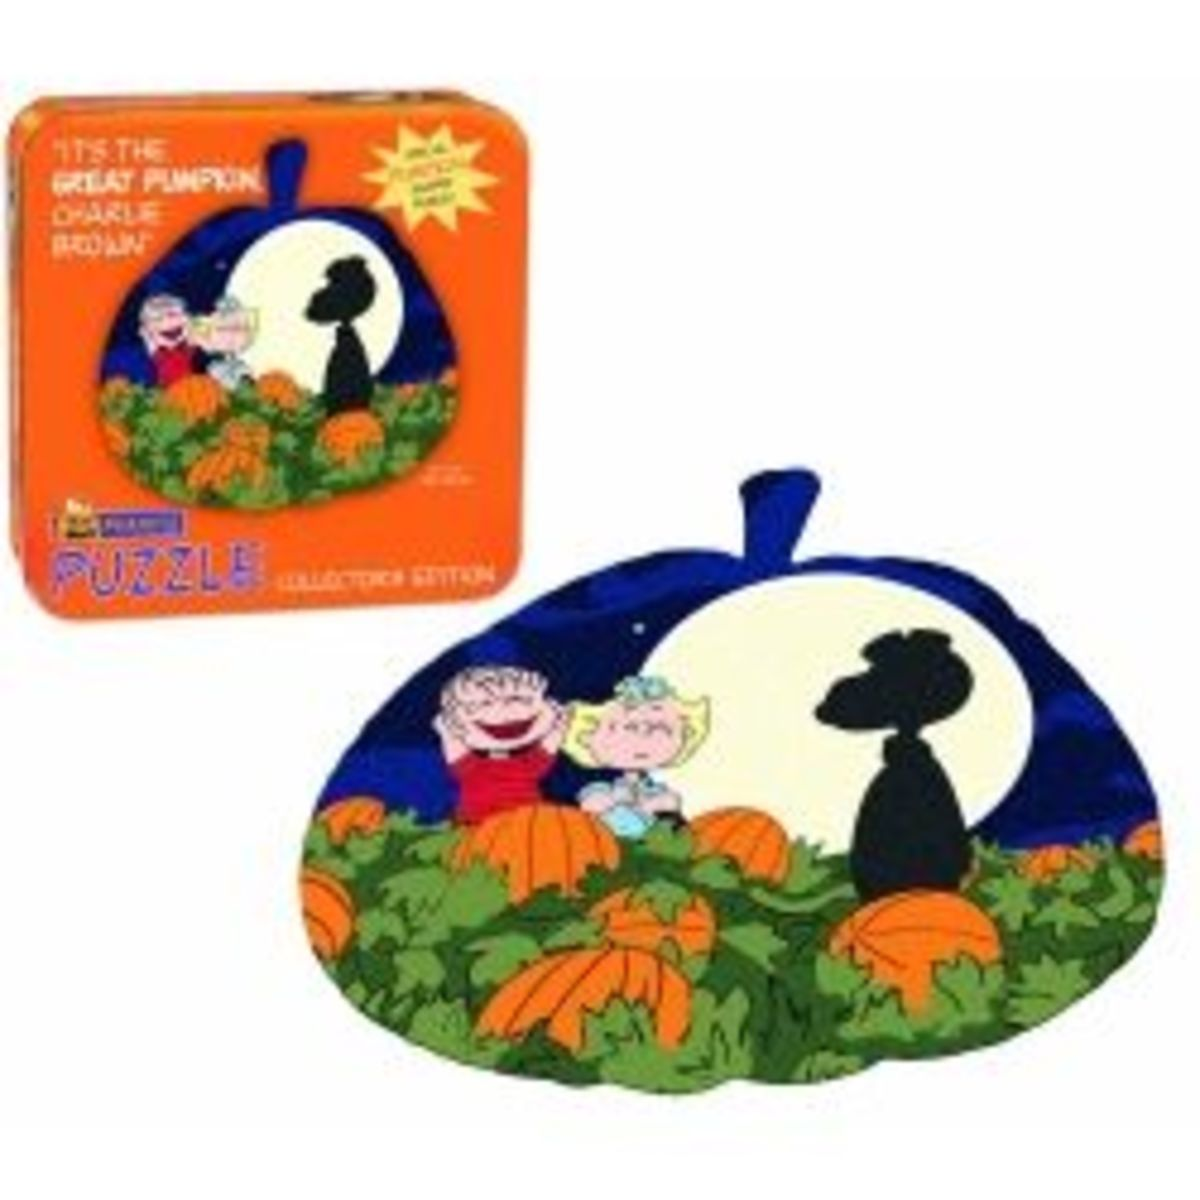 It's the Great Pumpkin, Charlie Brown Jigsaw Puzzle